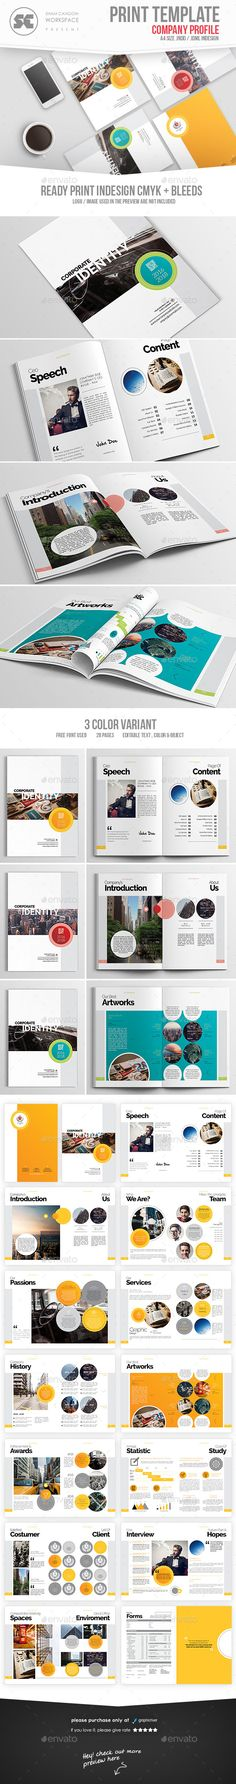 2017 Company Profile Template Cleaning companies, A4 paper and - corporate profile template